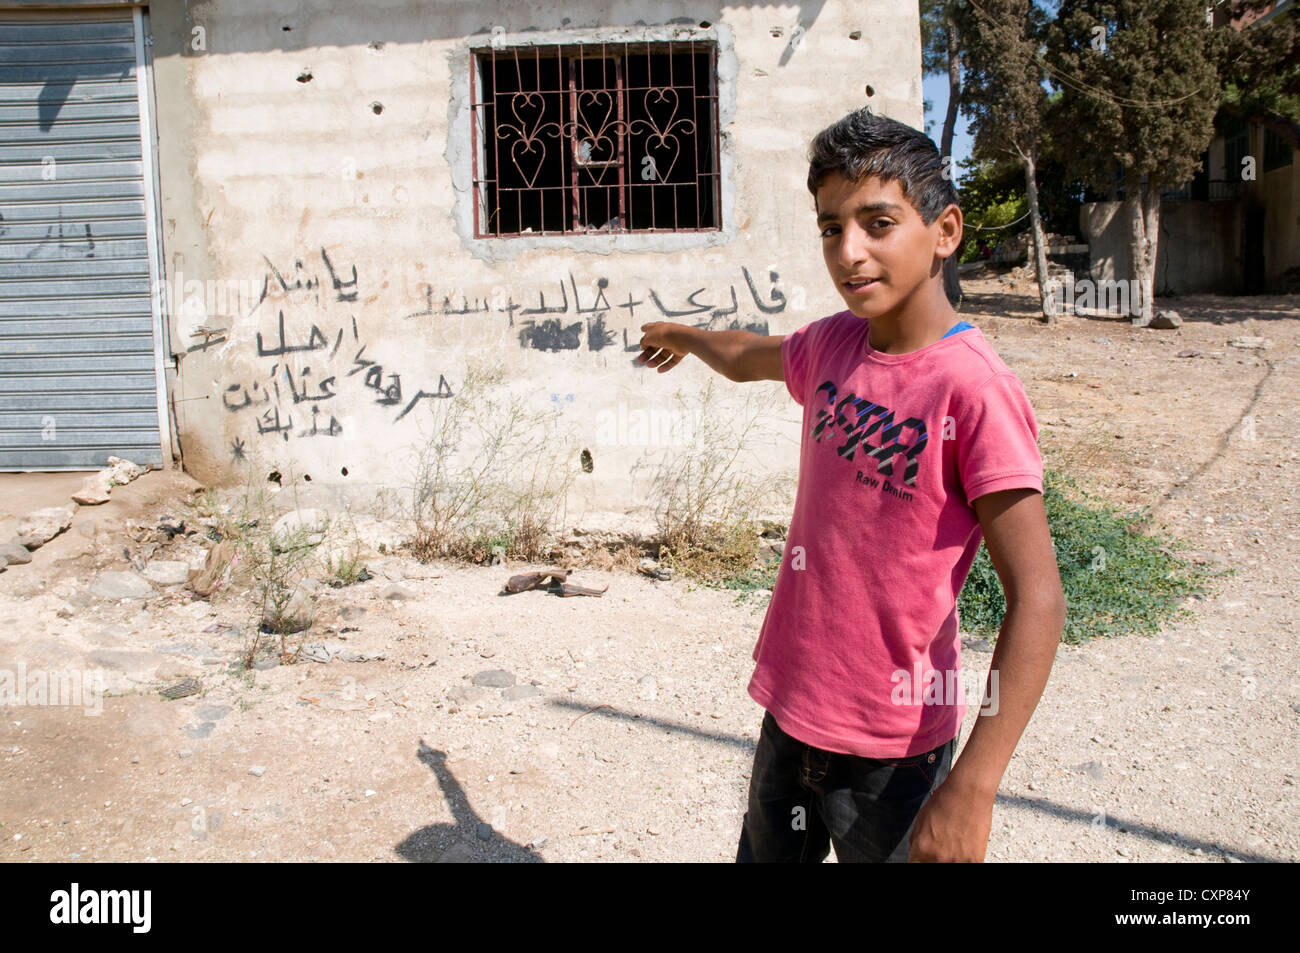 A Syrian refugee points to anti-Assad graffiti in the northern Lebanese region of Wadi Khaled on the Syria-Lebanon - Stock Image